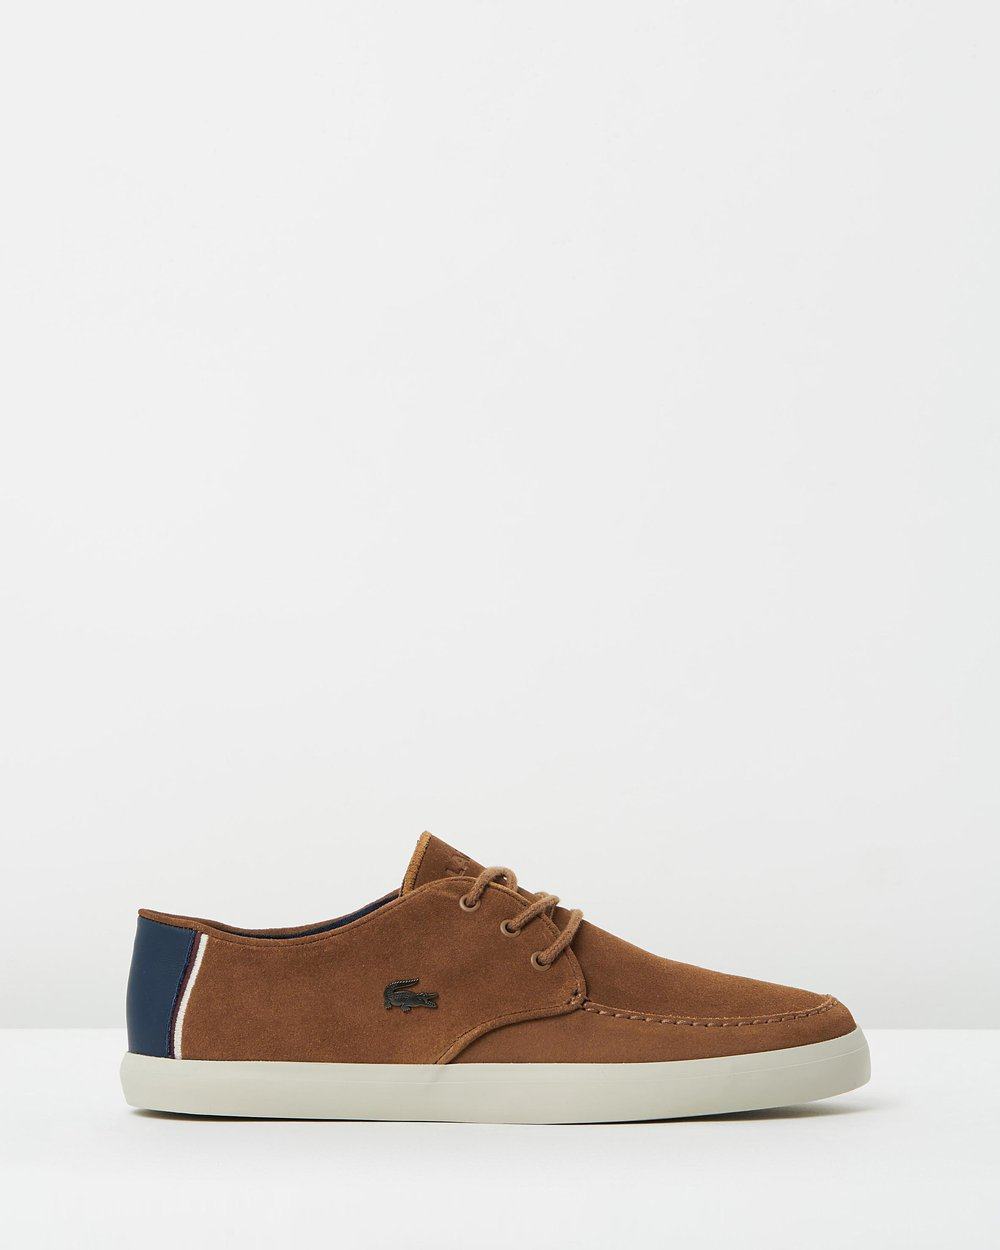 3ccb8b67c1cbca Lacoste Men s Sevrin 317 1 Cam BRW Casual Brown Sneakers - Top brand ...